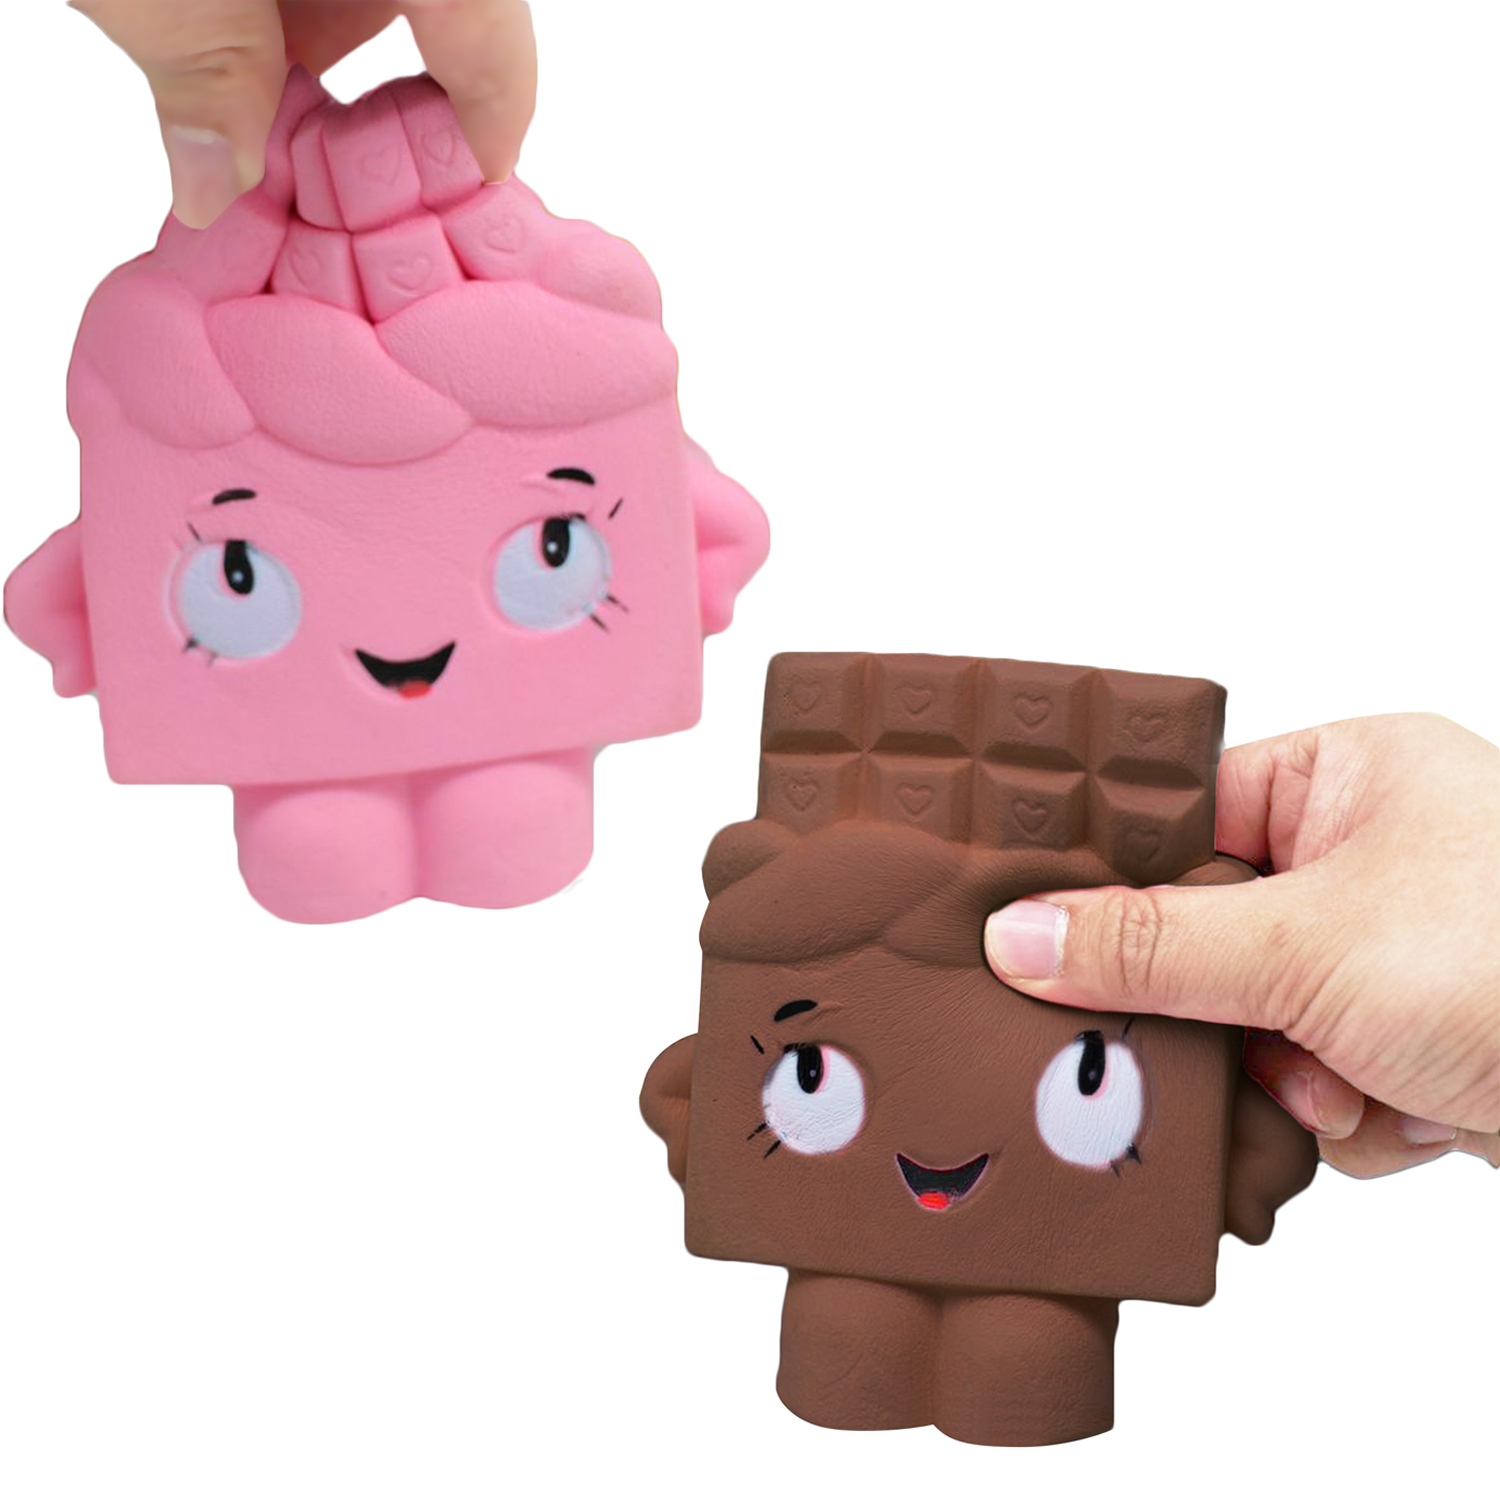 Besegad Cute Kawaii Soft Squishy Chocolate Toy Slow Rising For Children Adults Relieves Stress Anxiety Cabinet Decoration Sample